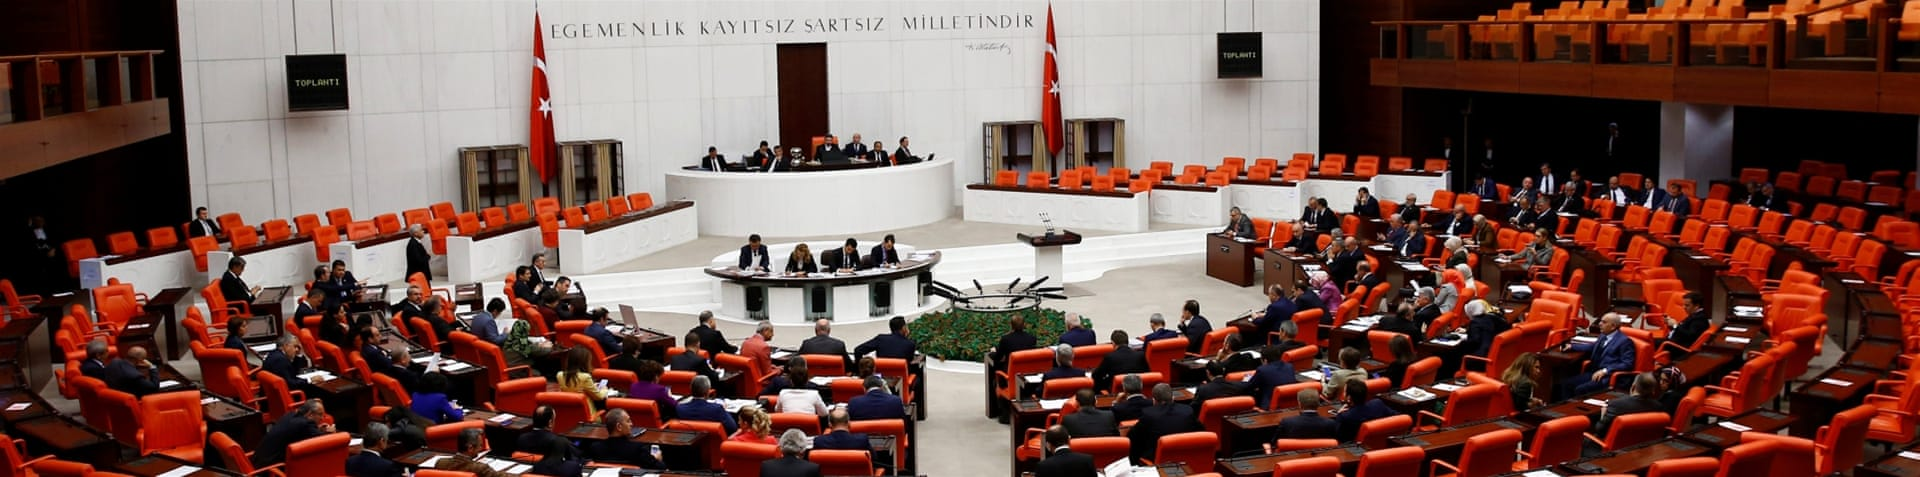 Turkey agrees with many aspects of Qatar's foreign policy vision, according to analysts [AP]